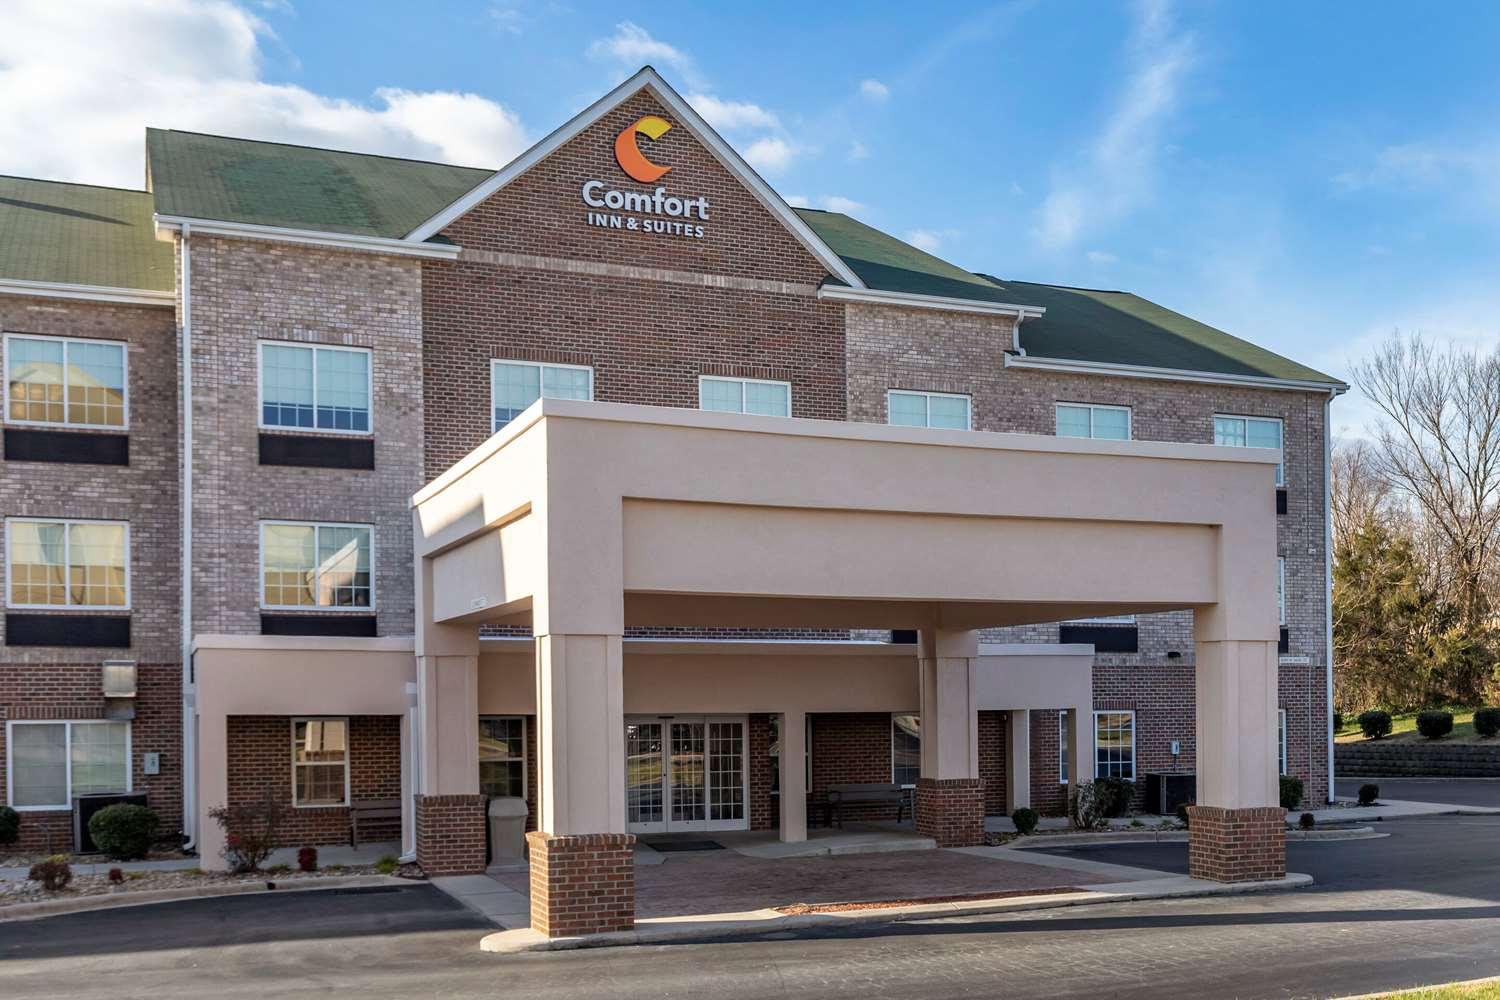 Country Inn & Suites Archdale